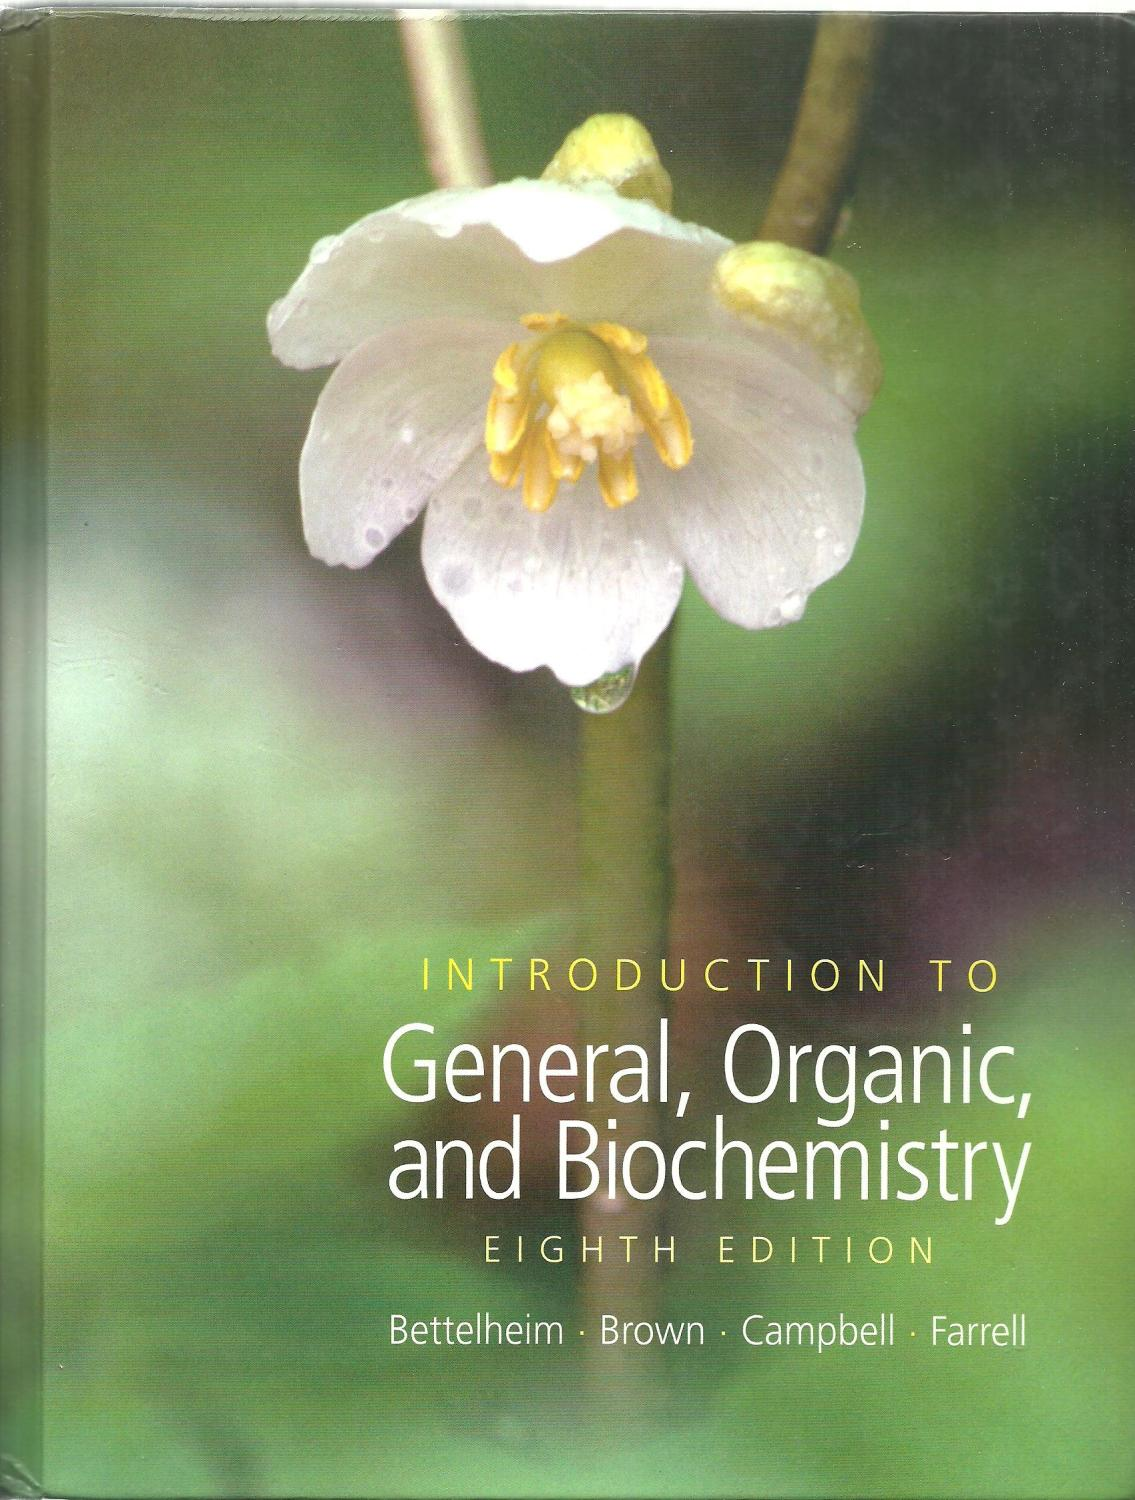 Introduction To General, Organic and Biochemistry, Eighth Edition:  Frederick A. Bettelheim,